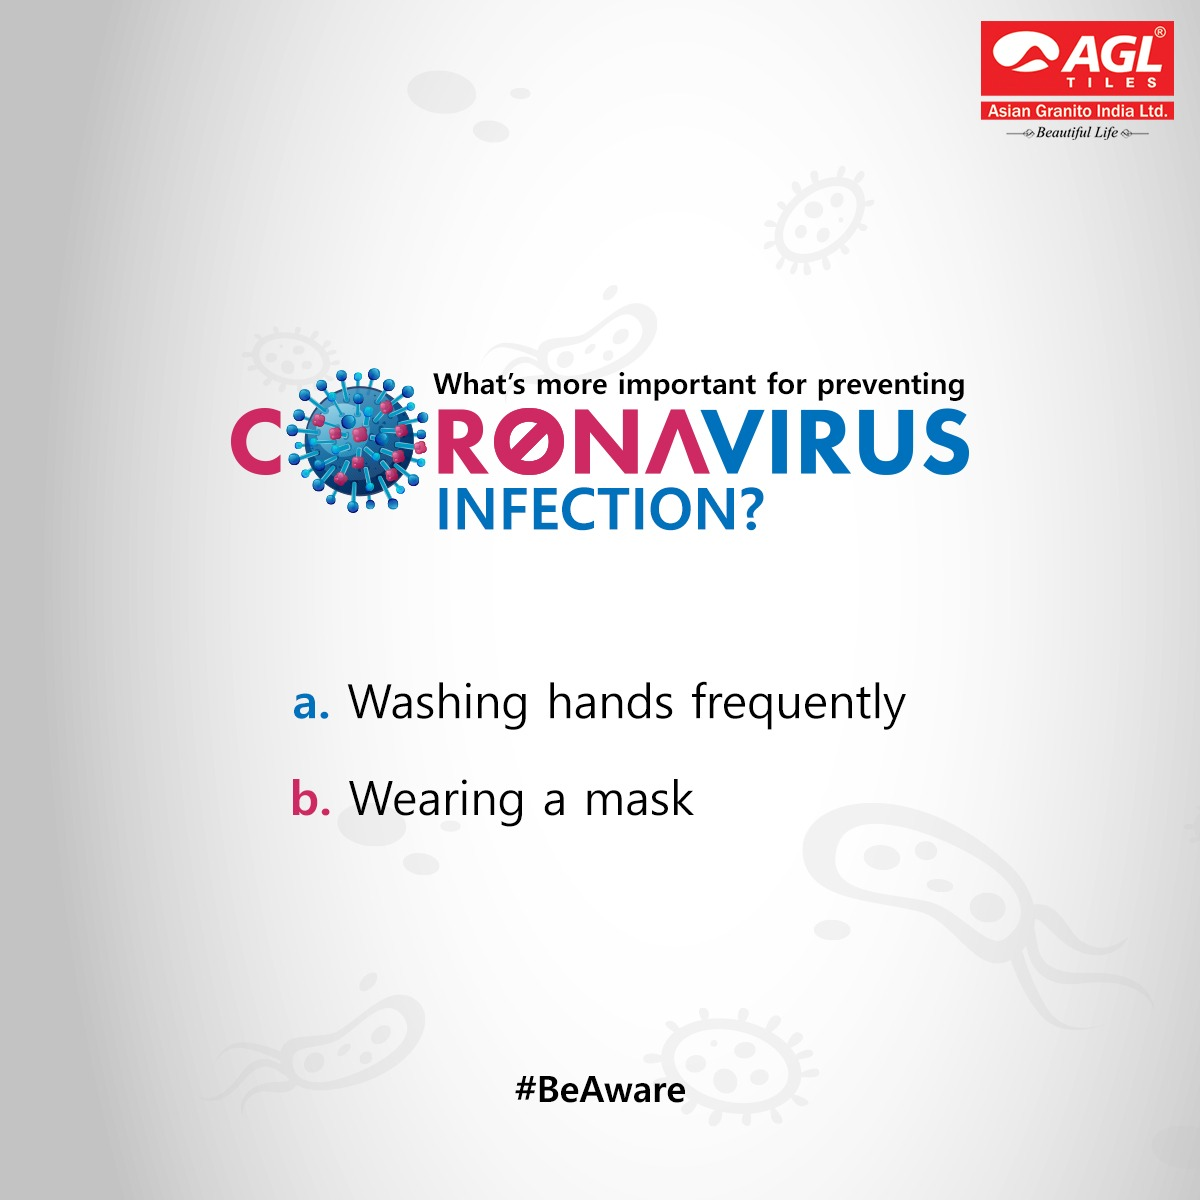 Follow the page and photo, Comment the correct answer, Tag 3 or more friends and stand a chance to win!  #BeAware #Quiz #Contest #CoronaVirus #AGLTiles #ig #instagood pic.twitter.com/ZRgeZgbP4d